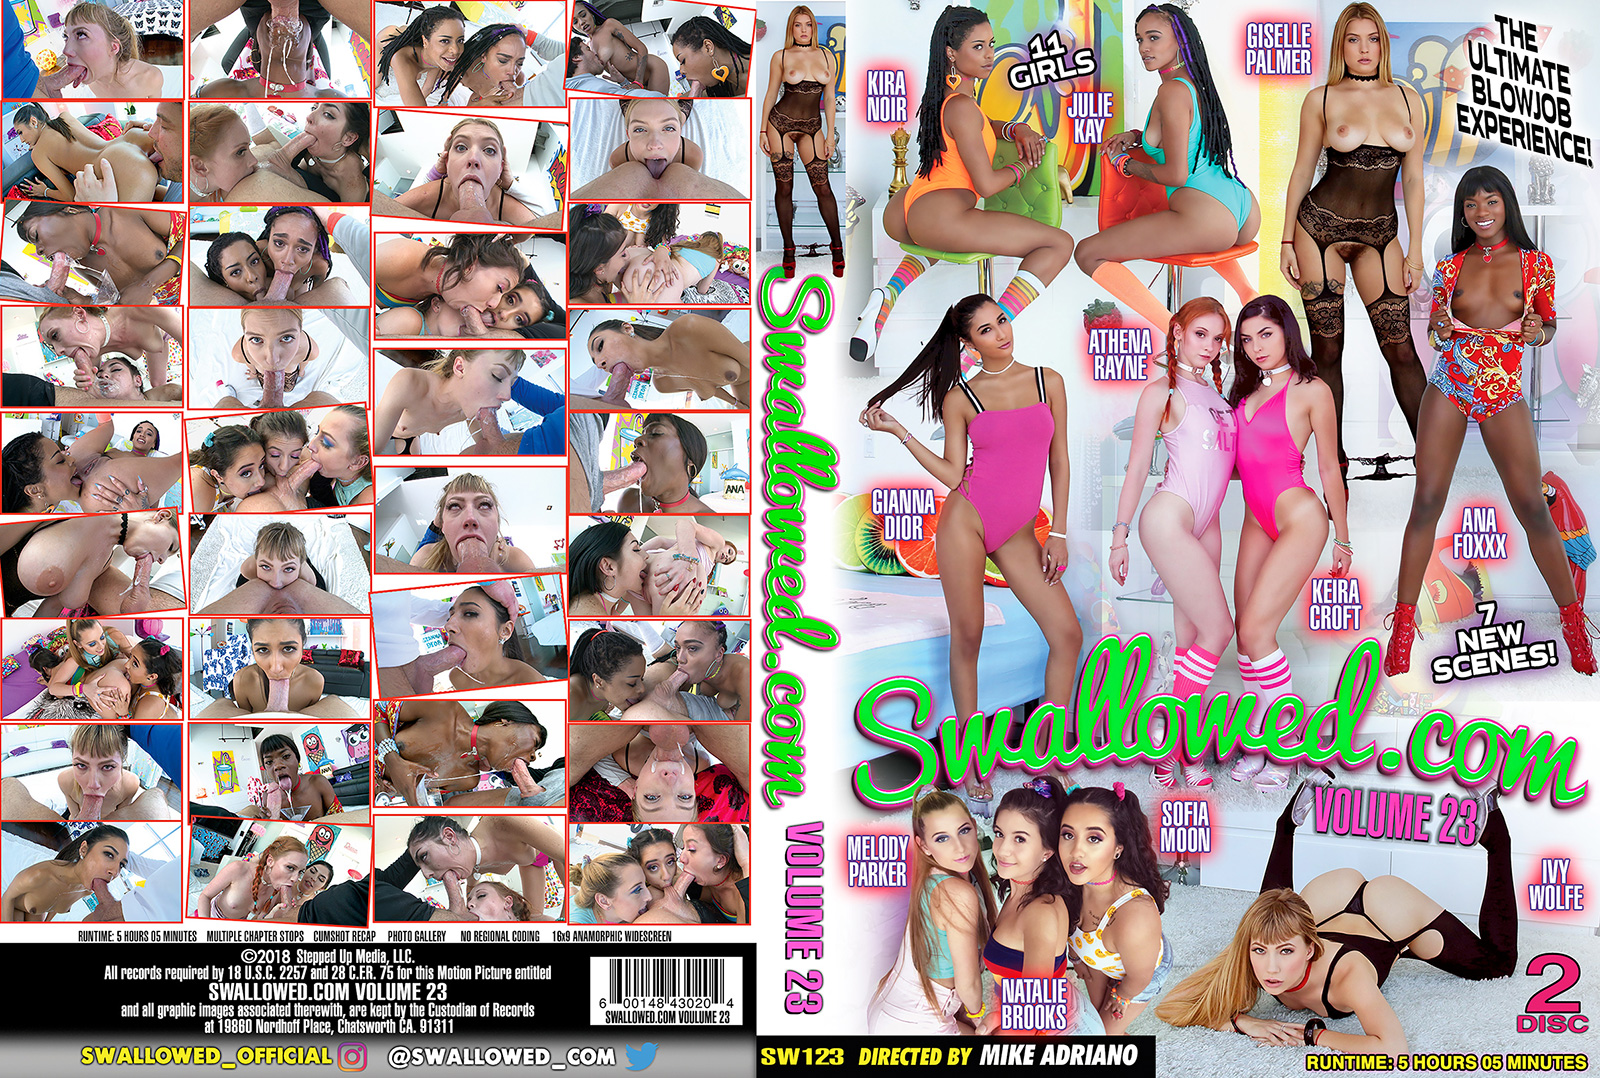 Swallowed Vol 23 DVD